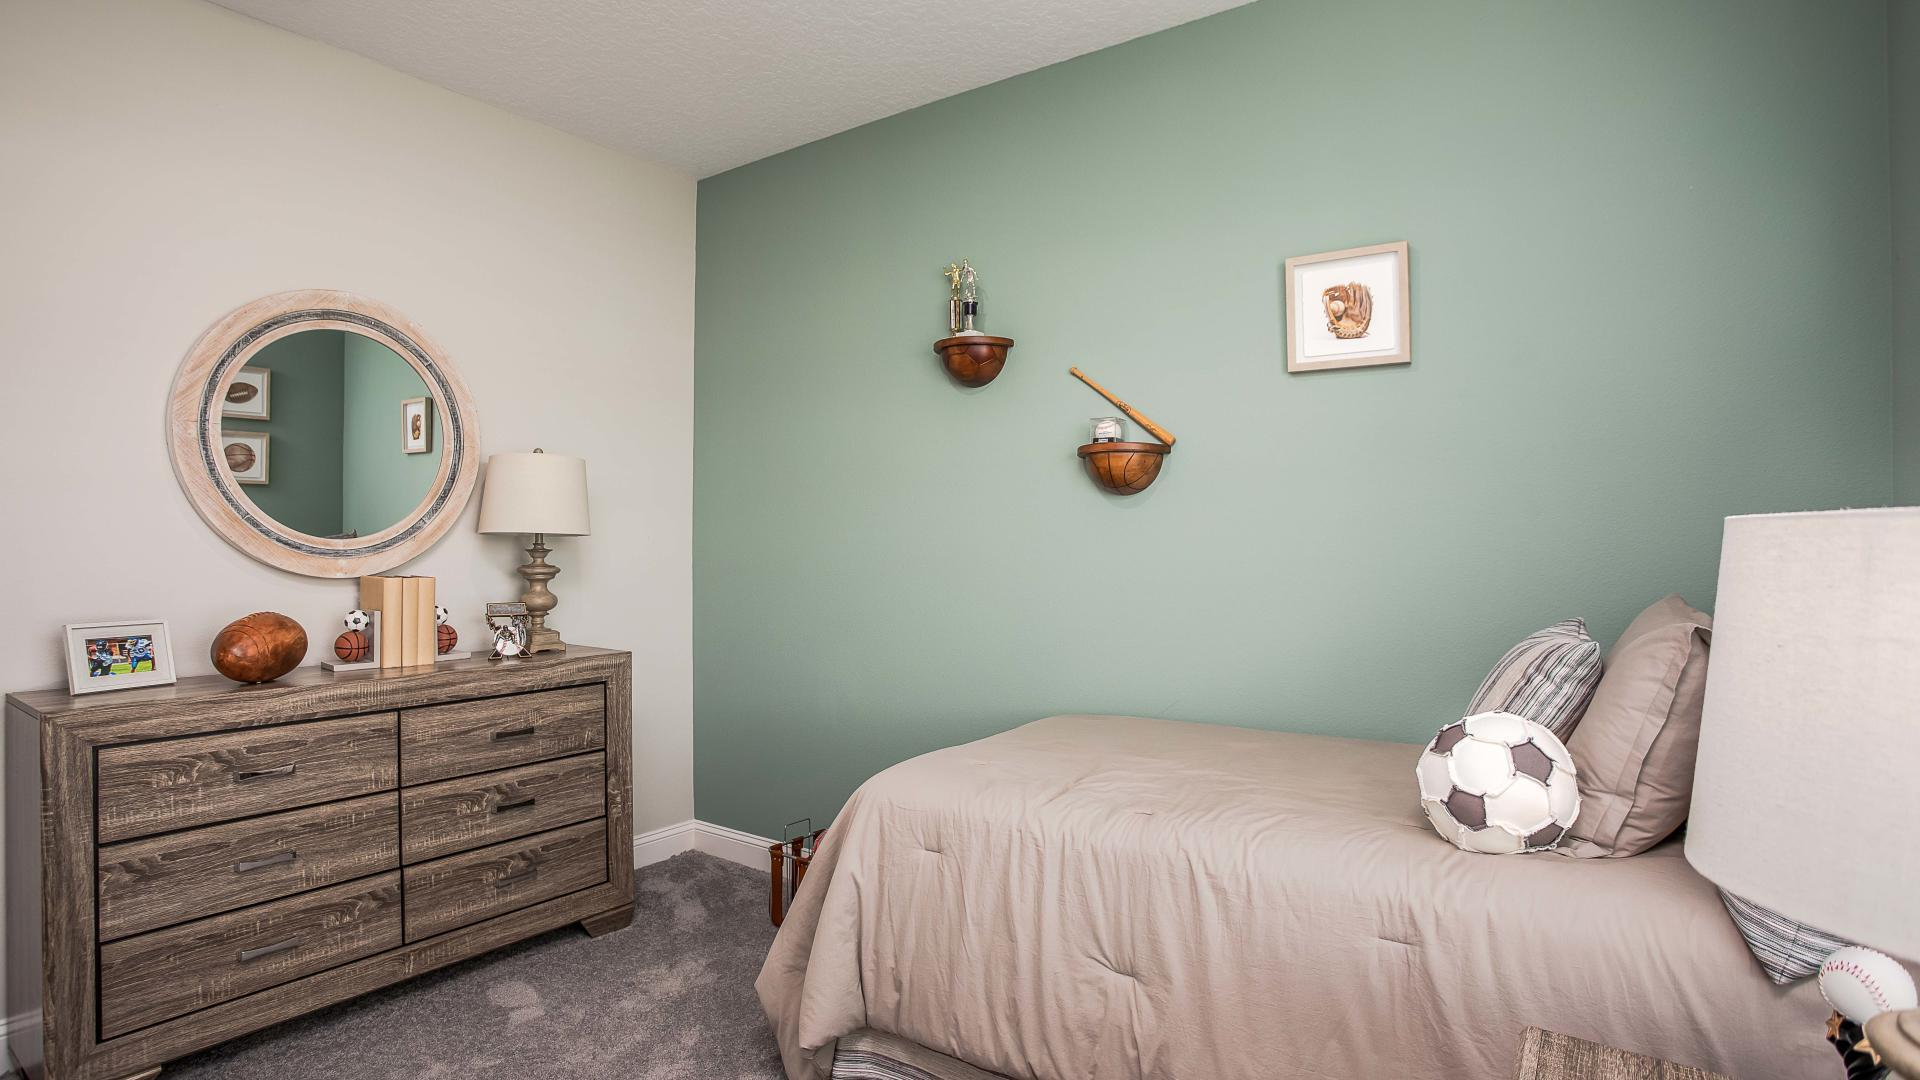 Bedroom featured in the Miramar By Maronda Homes in Melbourne, FL